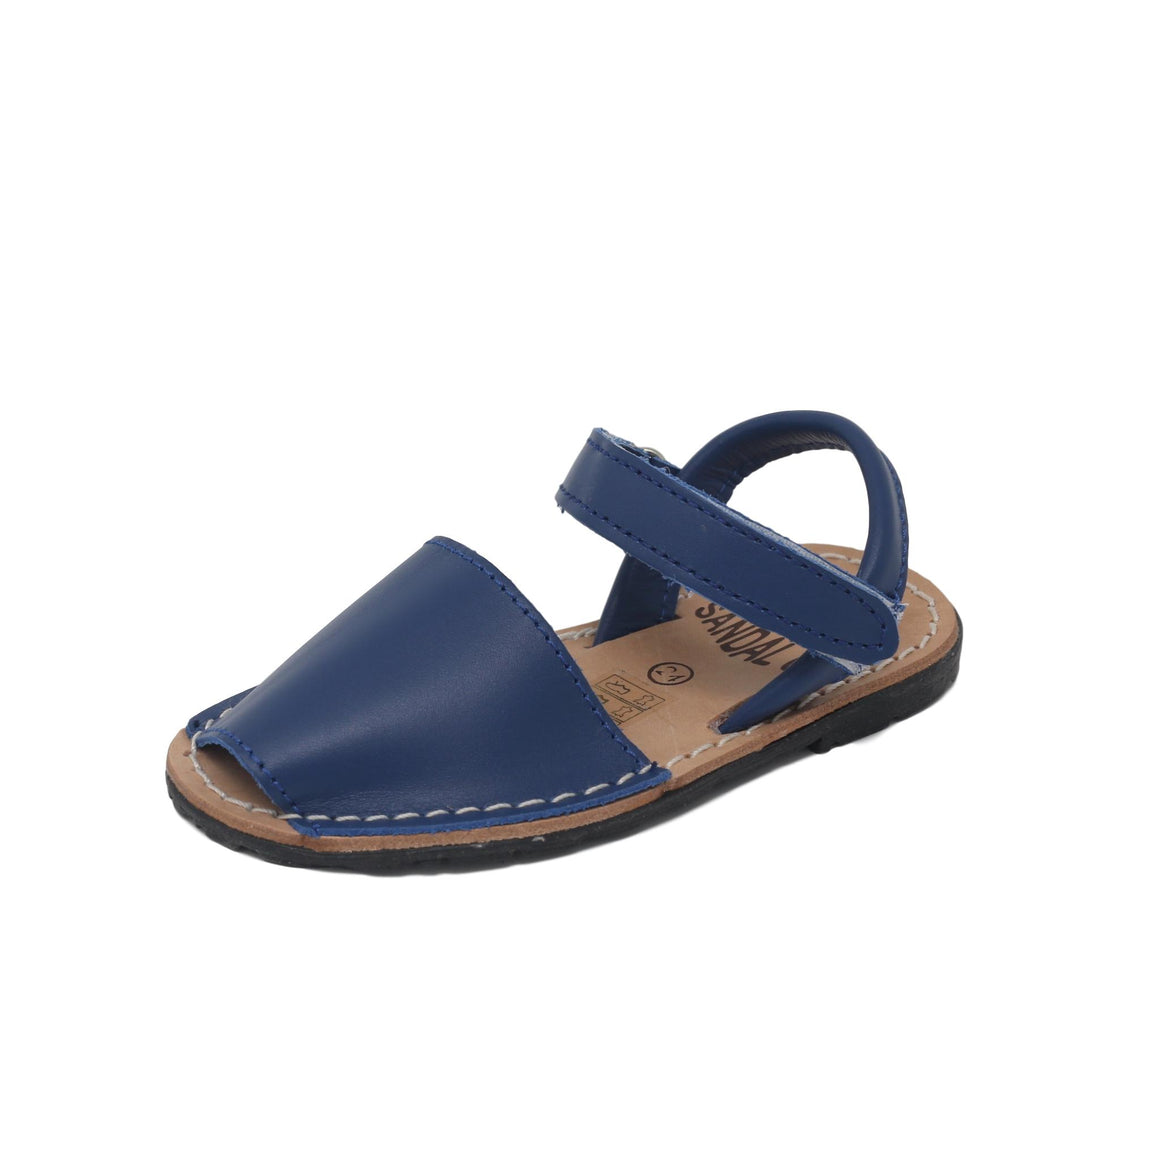 Baby navy blue with velcro strap